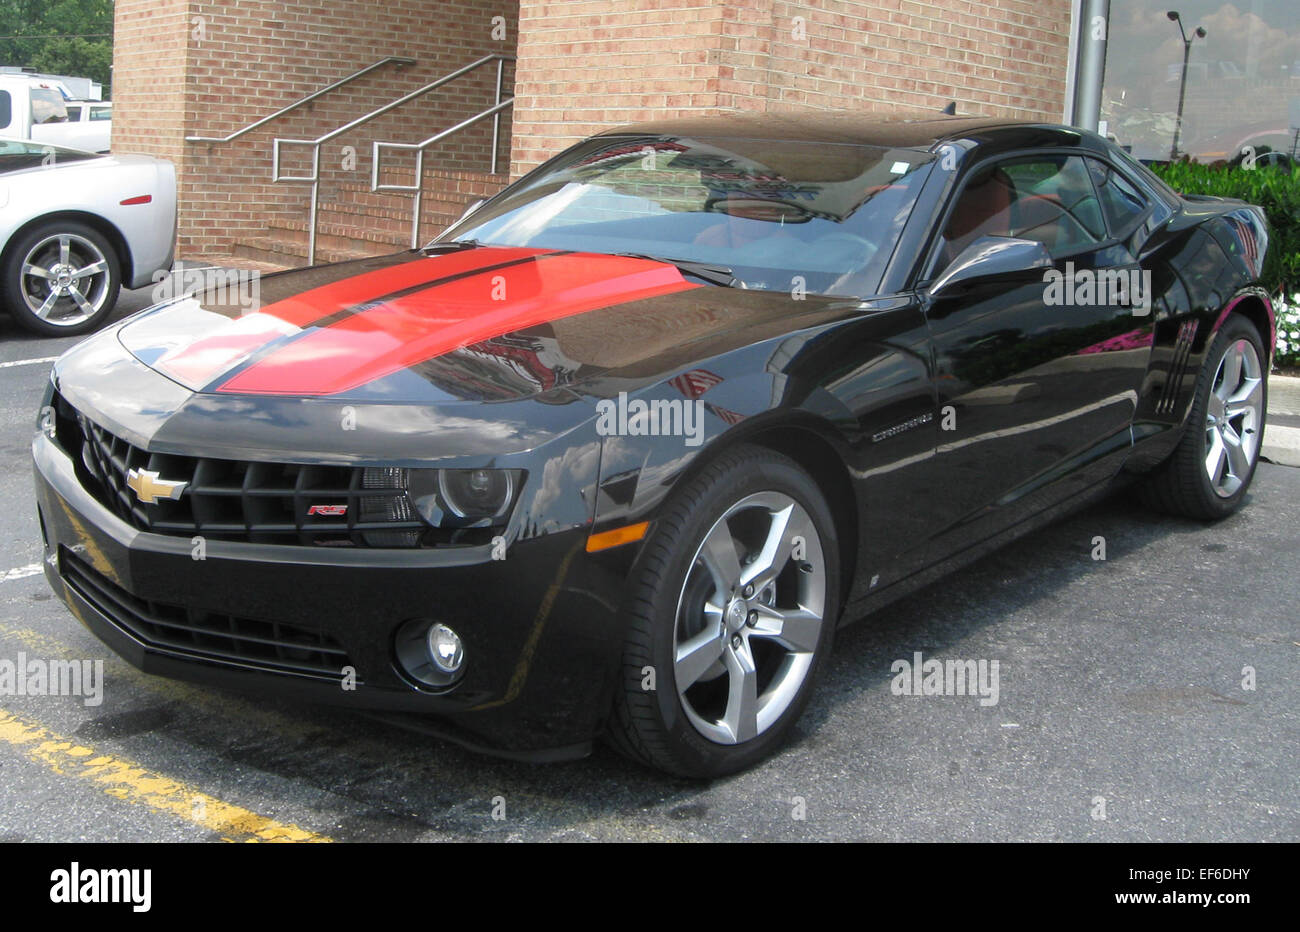 2010 Camaro Rs >> 2010 Chevrolet Camaro Rs 07 01 2009 Stock Photo 78203719